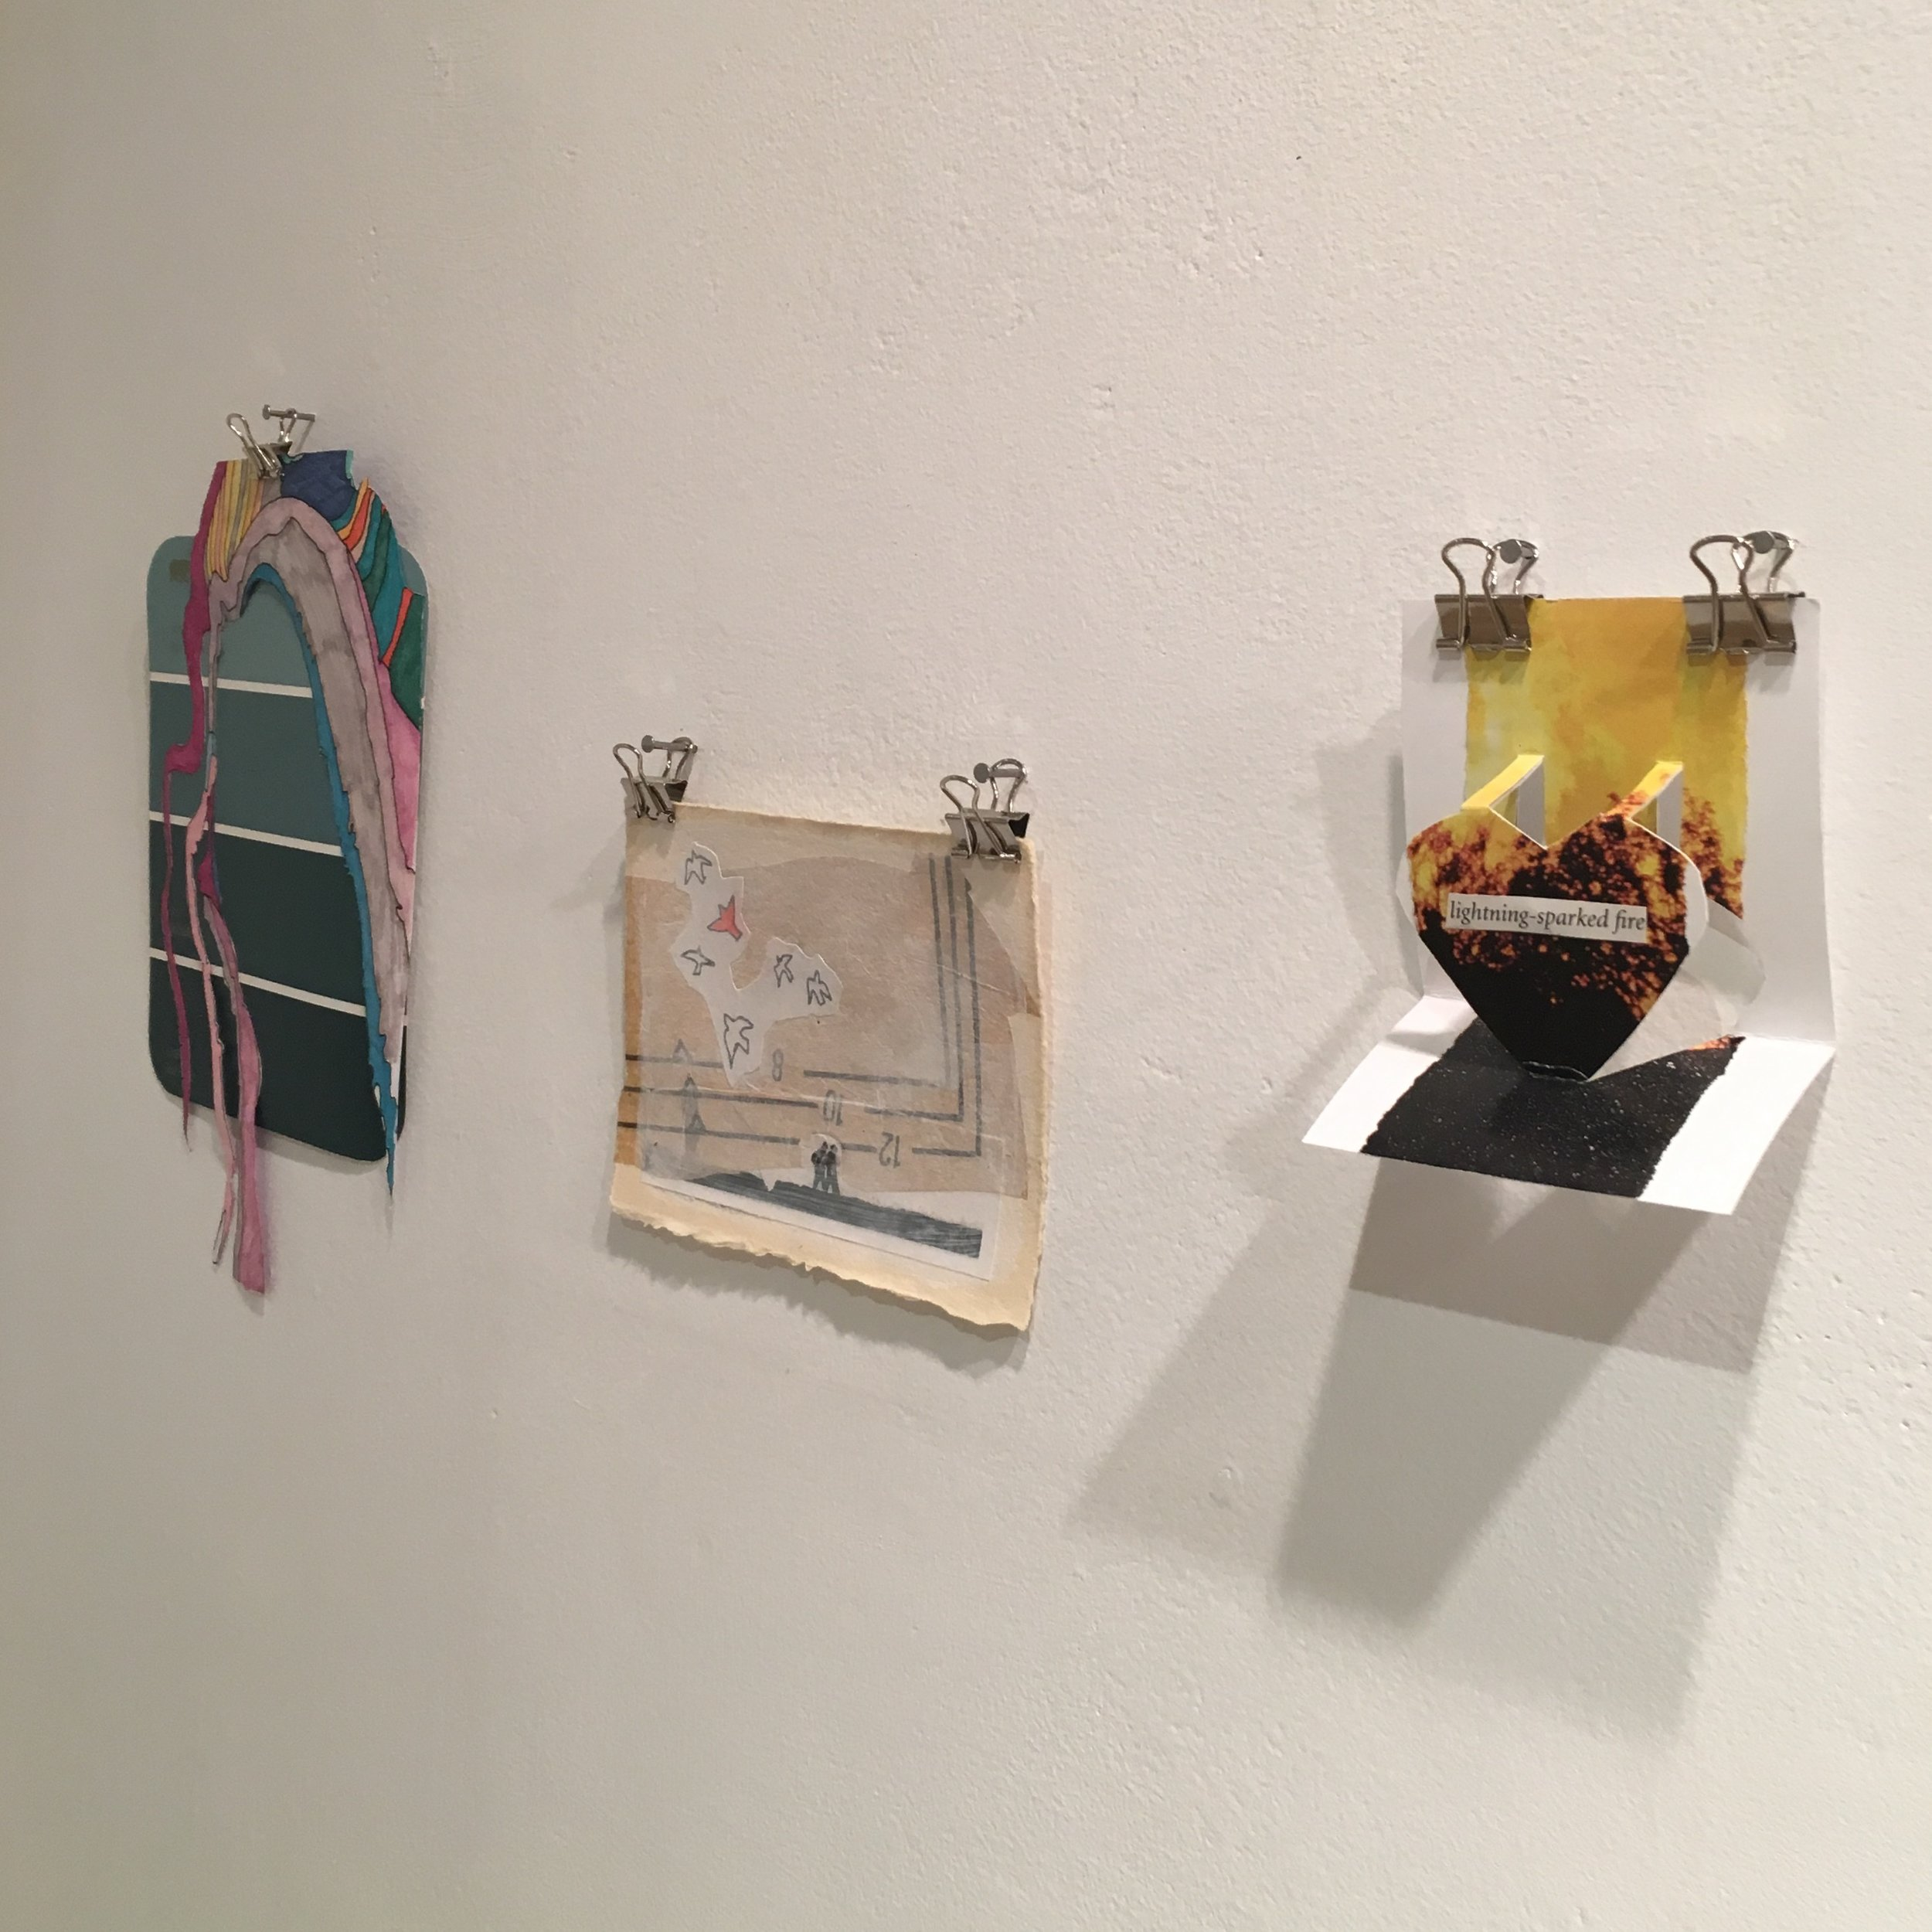 Postcard Project, install view: Postcard #1, Michelle Daly, 2016 Postcard #2, Shelley Chamberlin, 2016 Postcard #3, Shelley Chamberlin, 2016